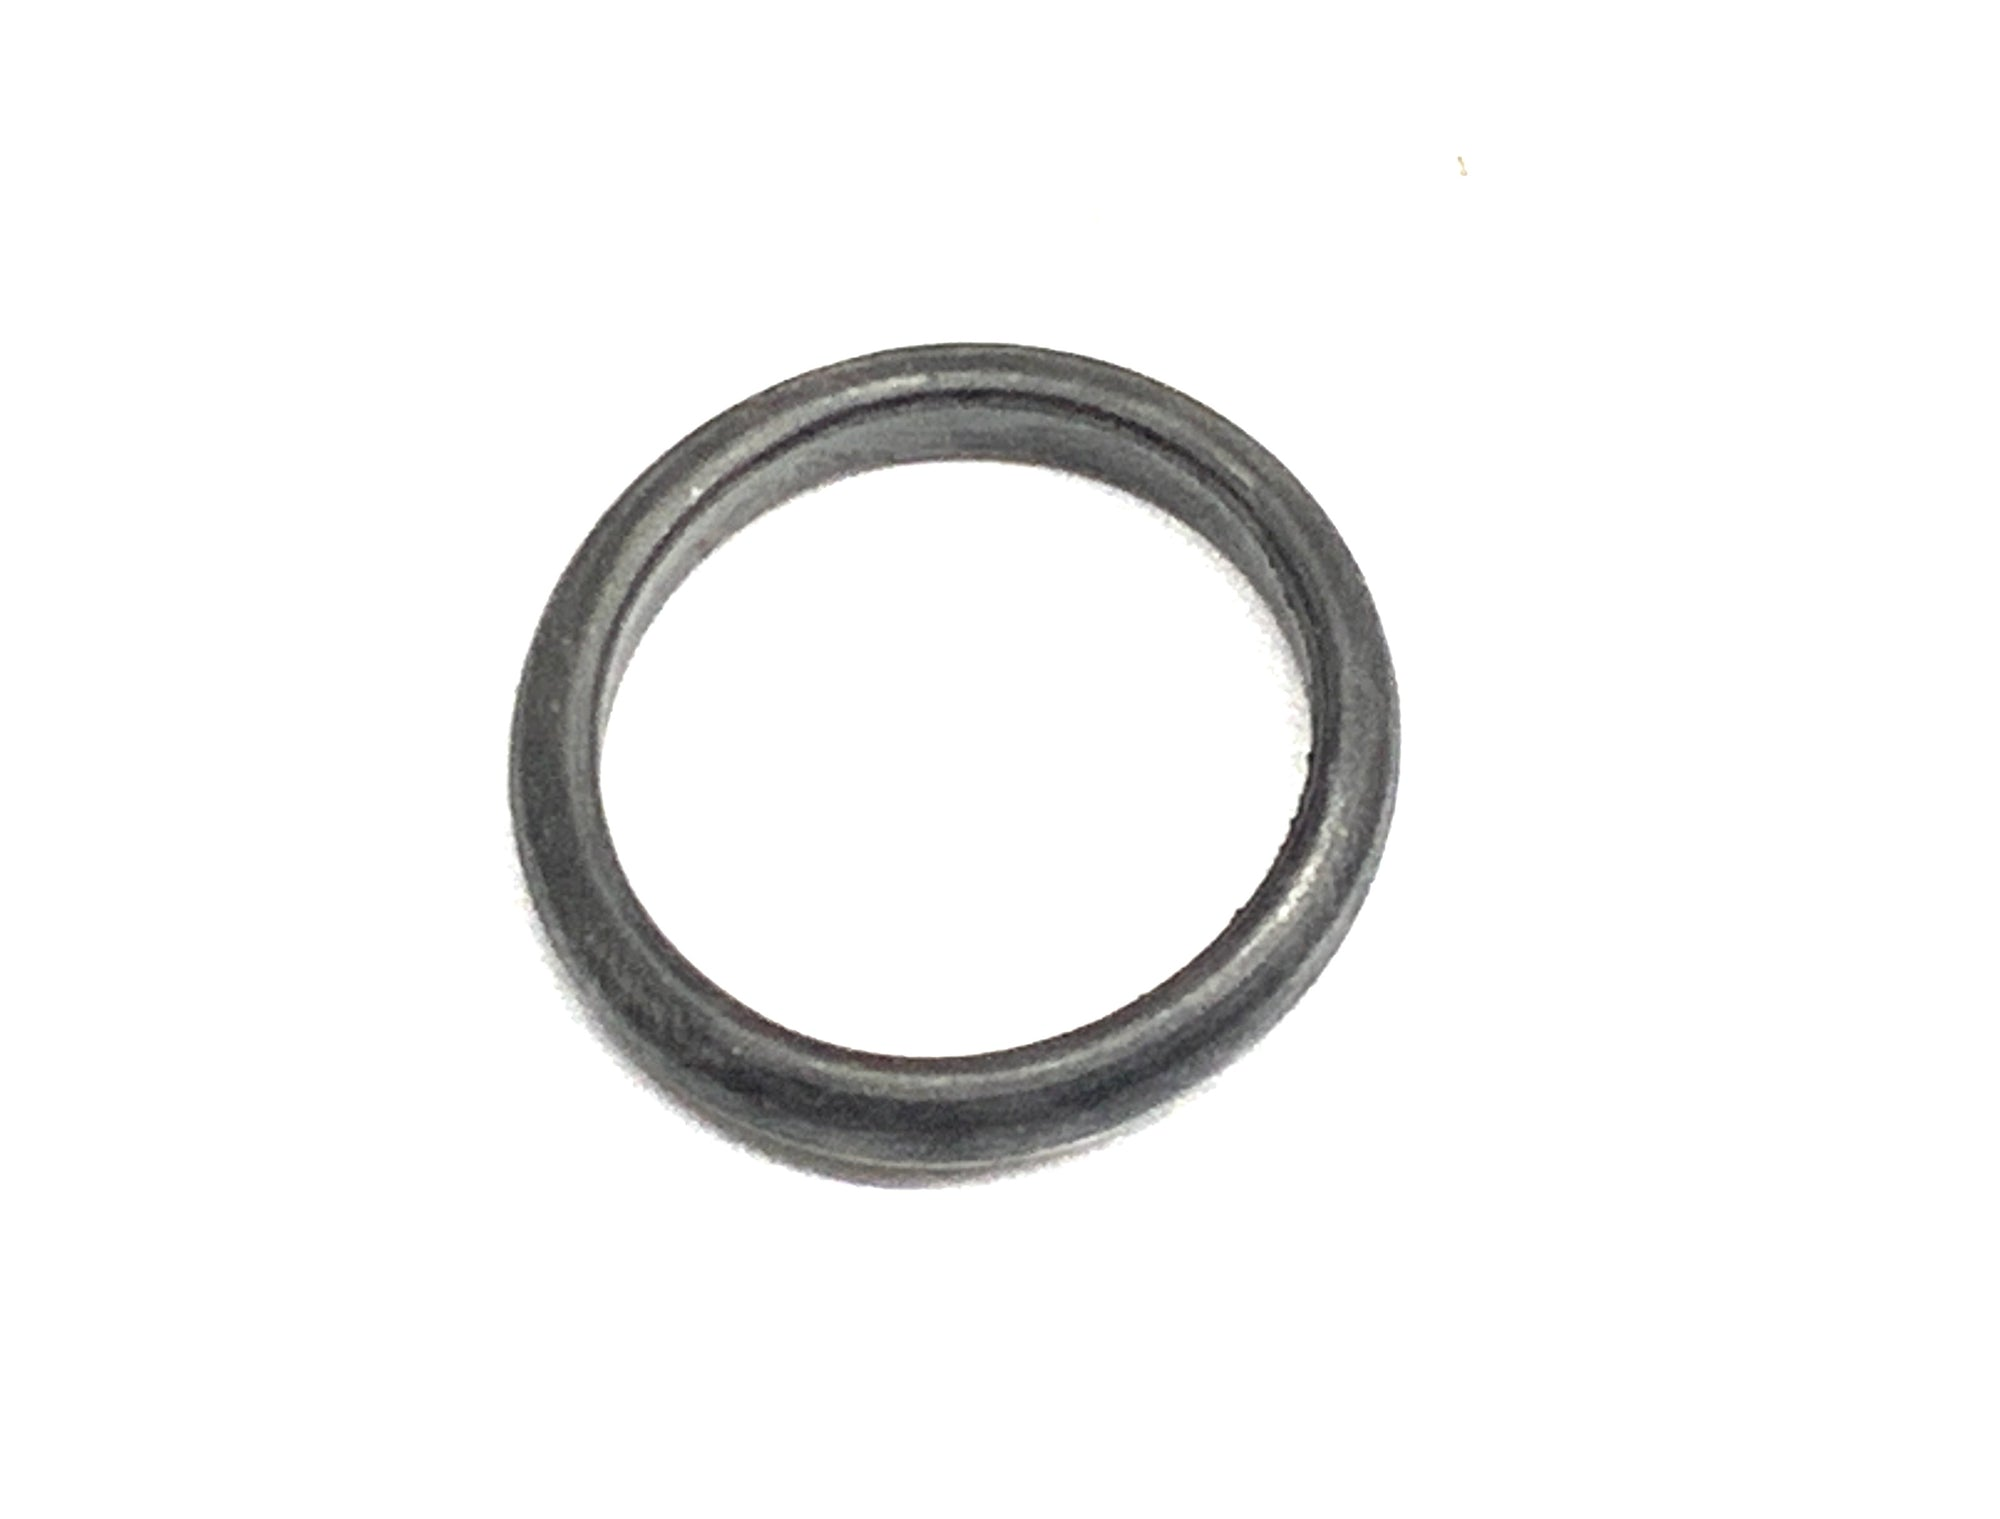 Distributor Shaft Seal O-ring